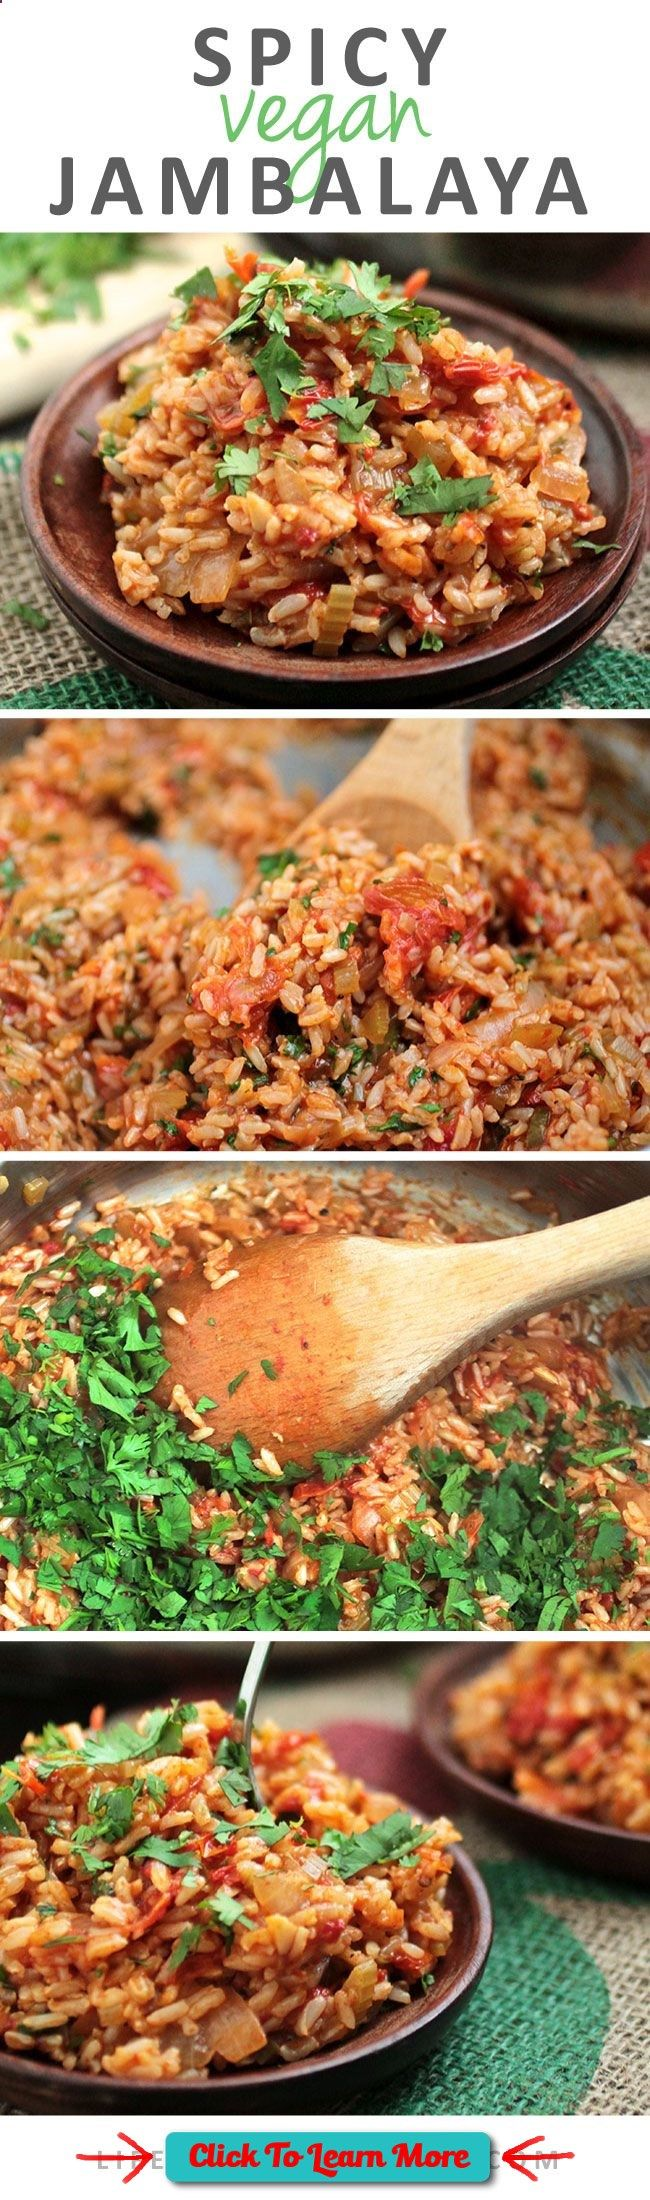 #FastestWayToLoseWeight by EATING, Click to learn more, Spicy Vegan Jambalaya makes for an amazingly delicious & #healthy dinner: , #HealthyRecipes, #FitnessRecipes, #BurnFatRecipes, #WeightLossRecipes, #WeightLossDiets